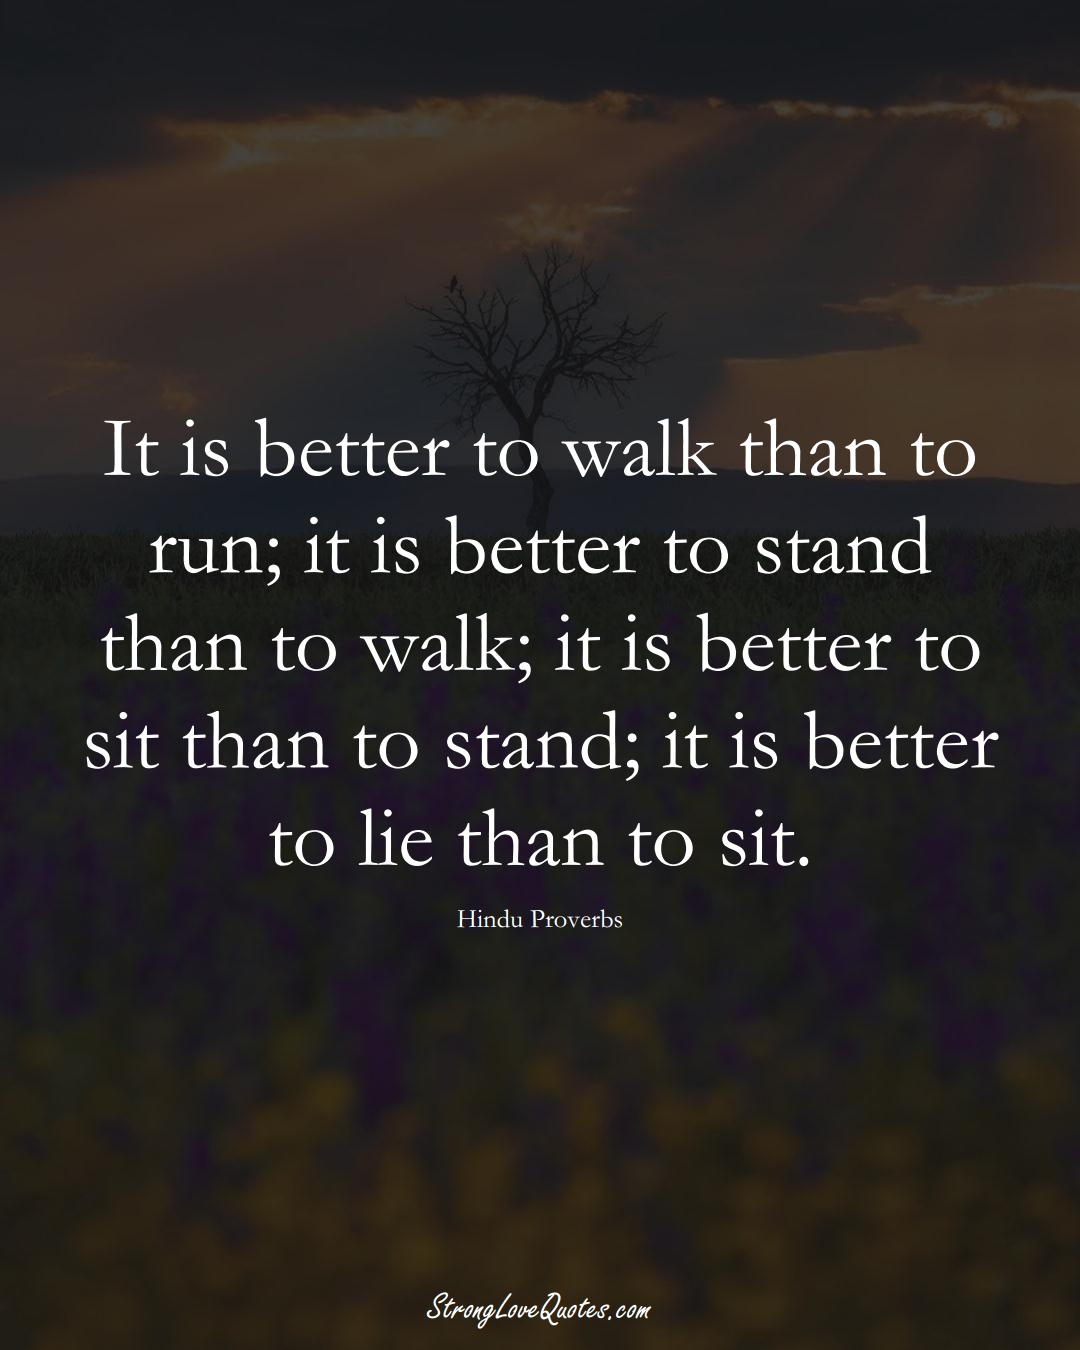 It is better to walk than to run; it is better to stand than to walk; it is better to sit than to stand; it is better to lie than to sit. (Hindu Sayings);  #aVarietyofCulturesSayings